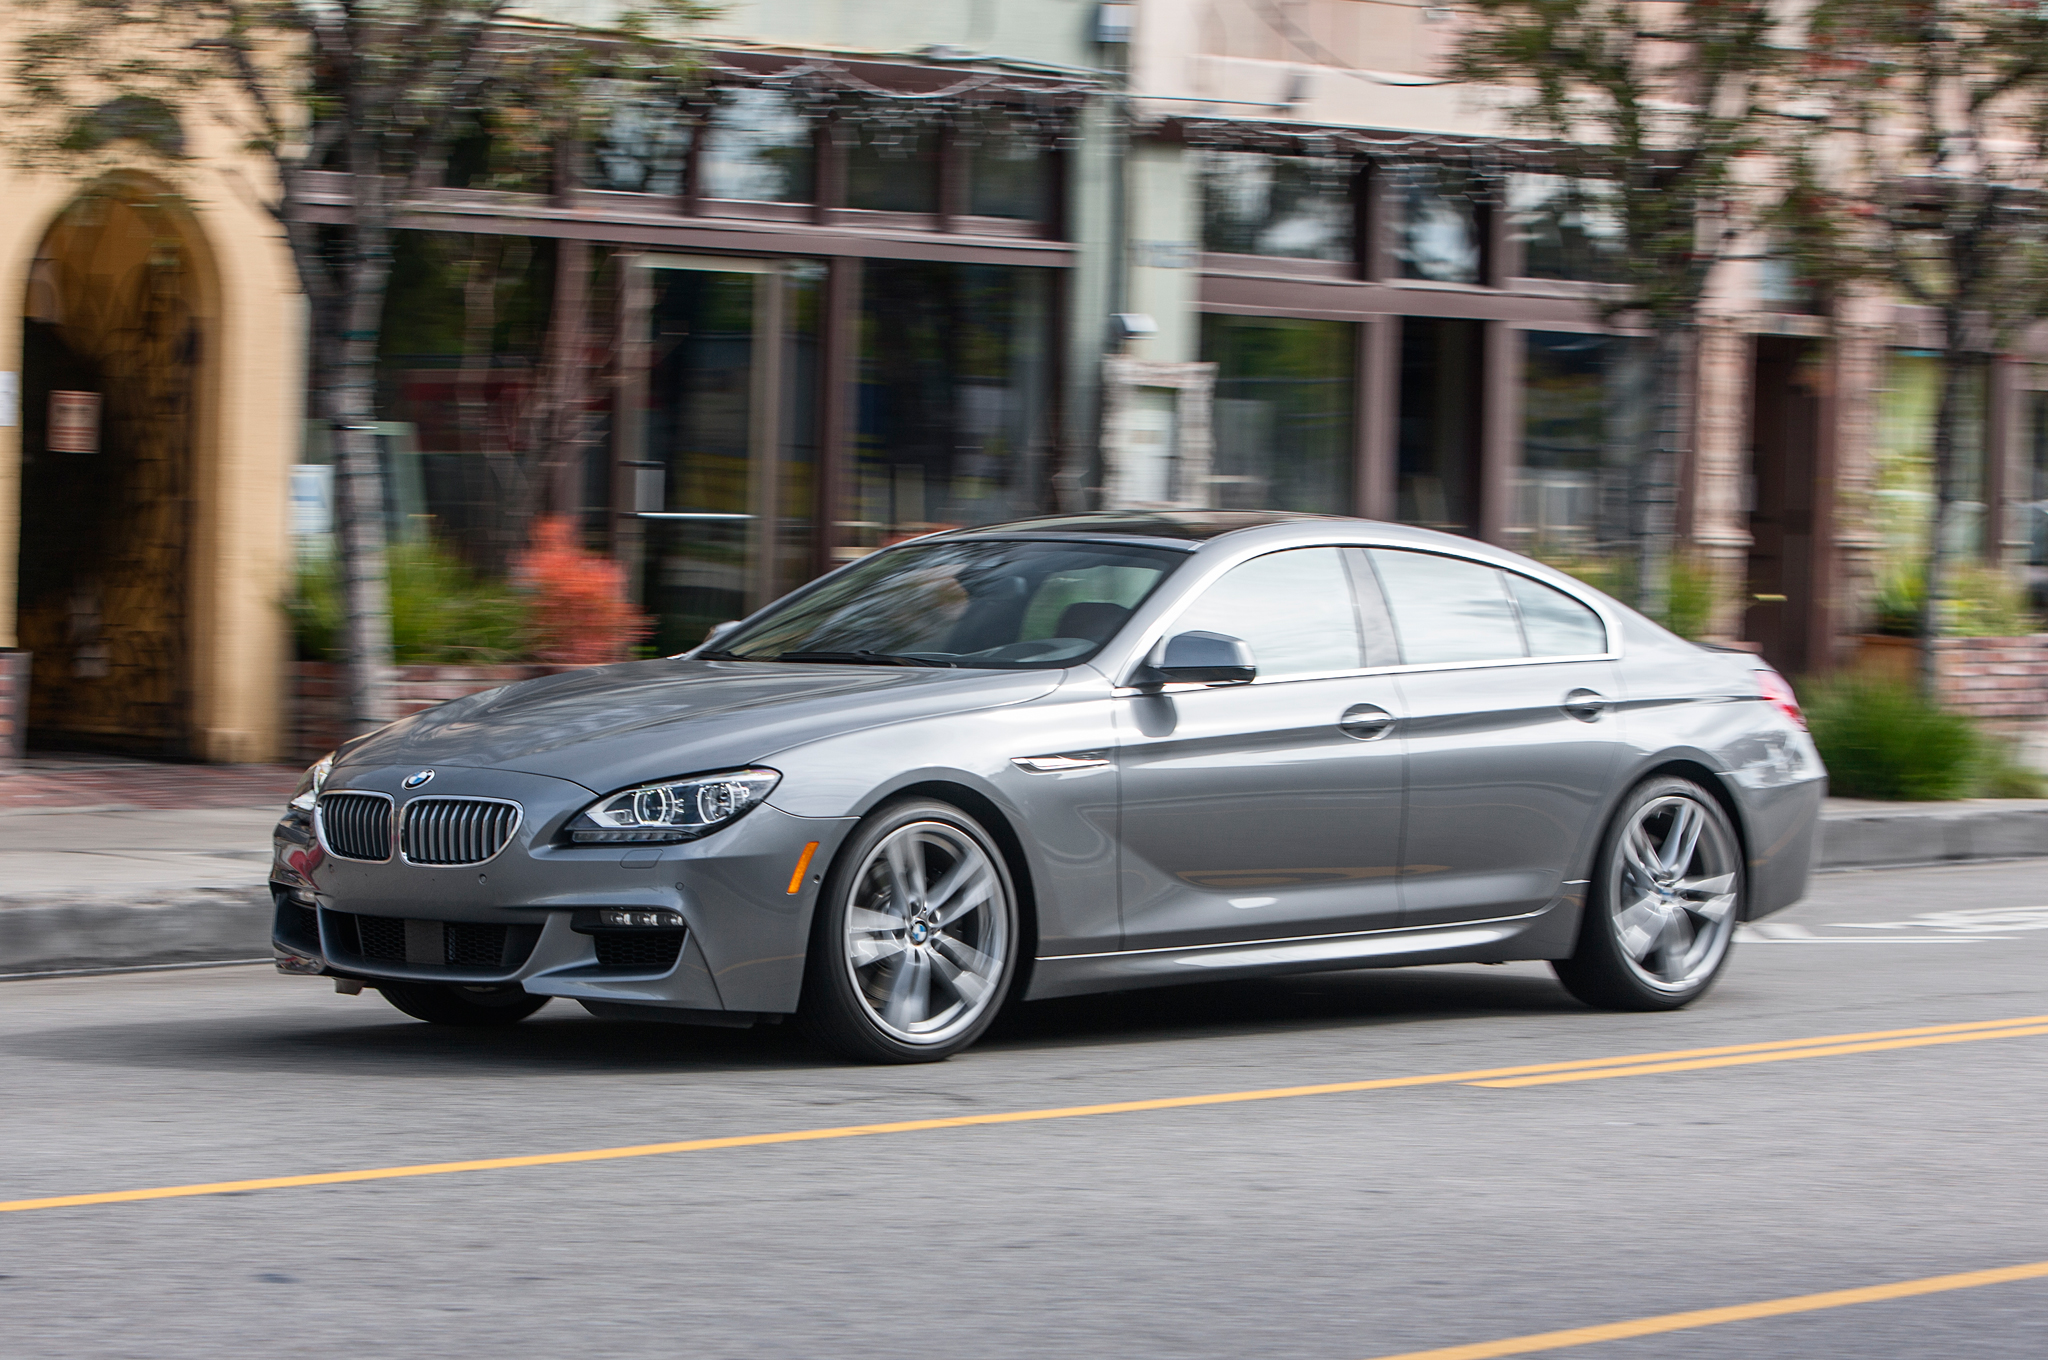 650I Gran Coupe >> 2013 Bmw 650i Gran Coupe Long Term Update 2 Motortrend